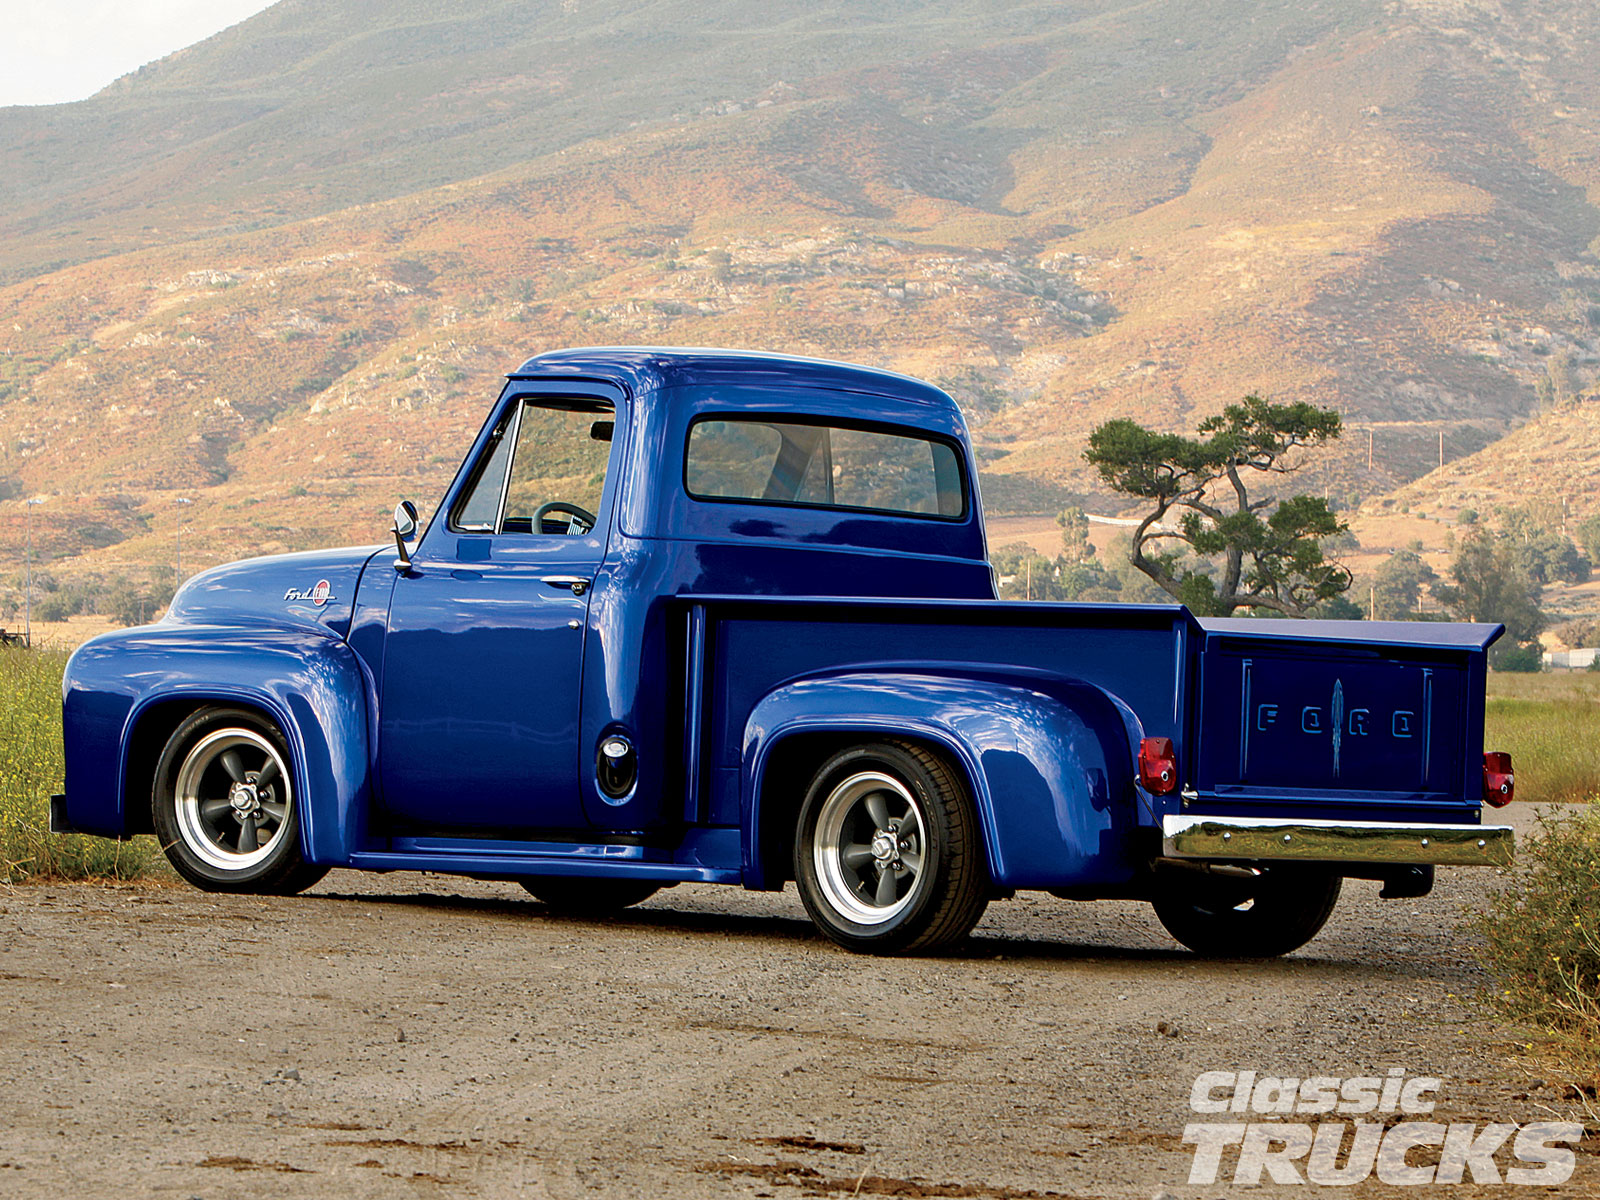 1955 F100 Ford Truck Turbo